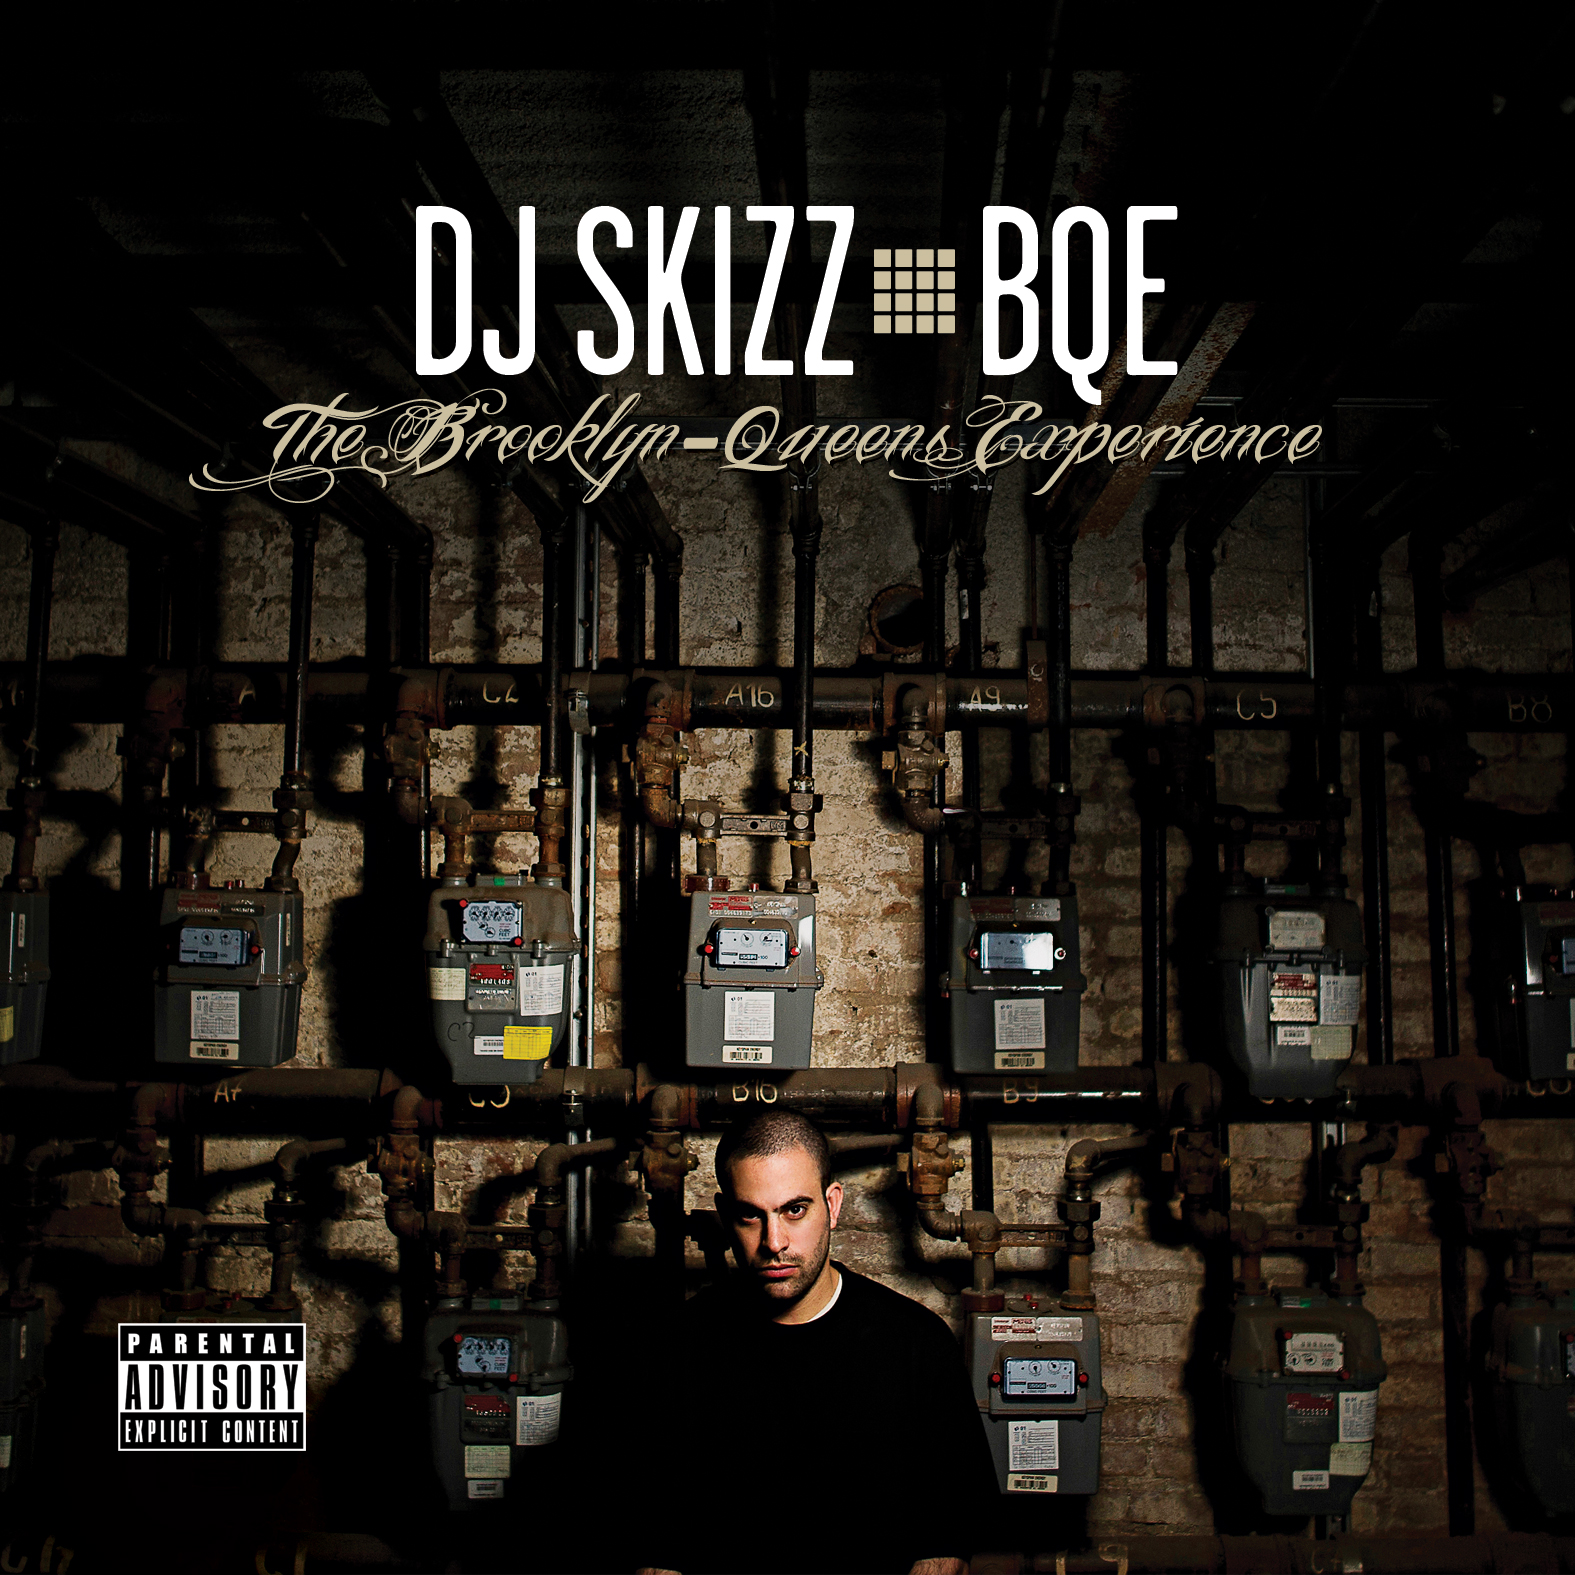 DJ Skizz's B.Q.E. album Tracklist, Artwork & 1st Webisode ft. DJ Premier